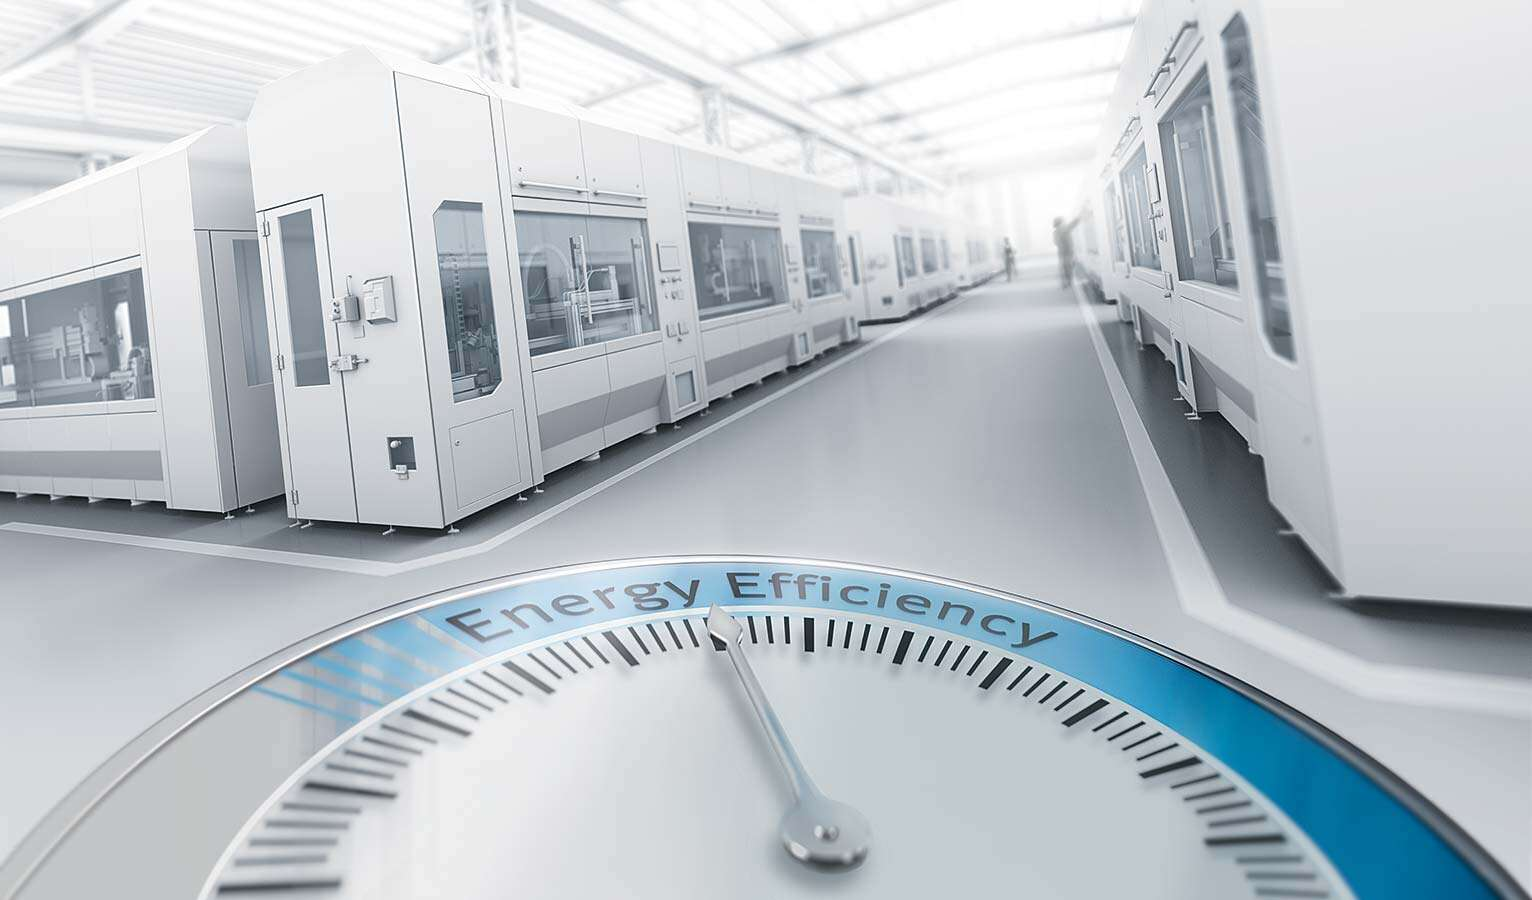 Energy efficiency at Festo – holistic solutions for an economically efficient and sustainable future